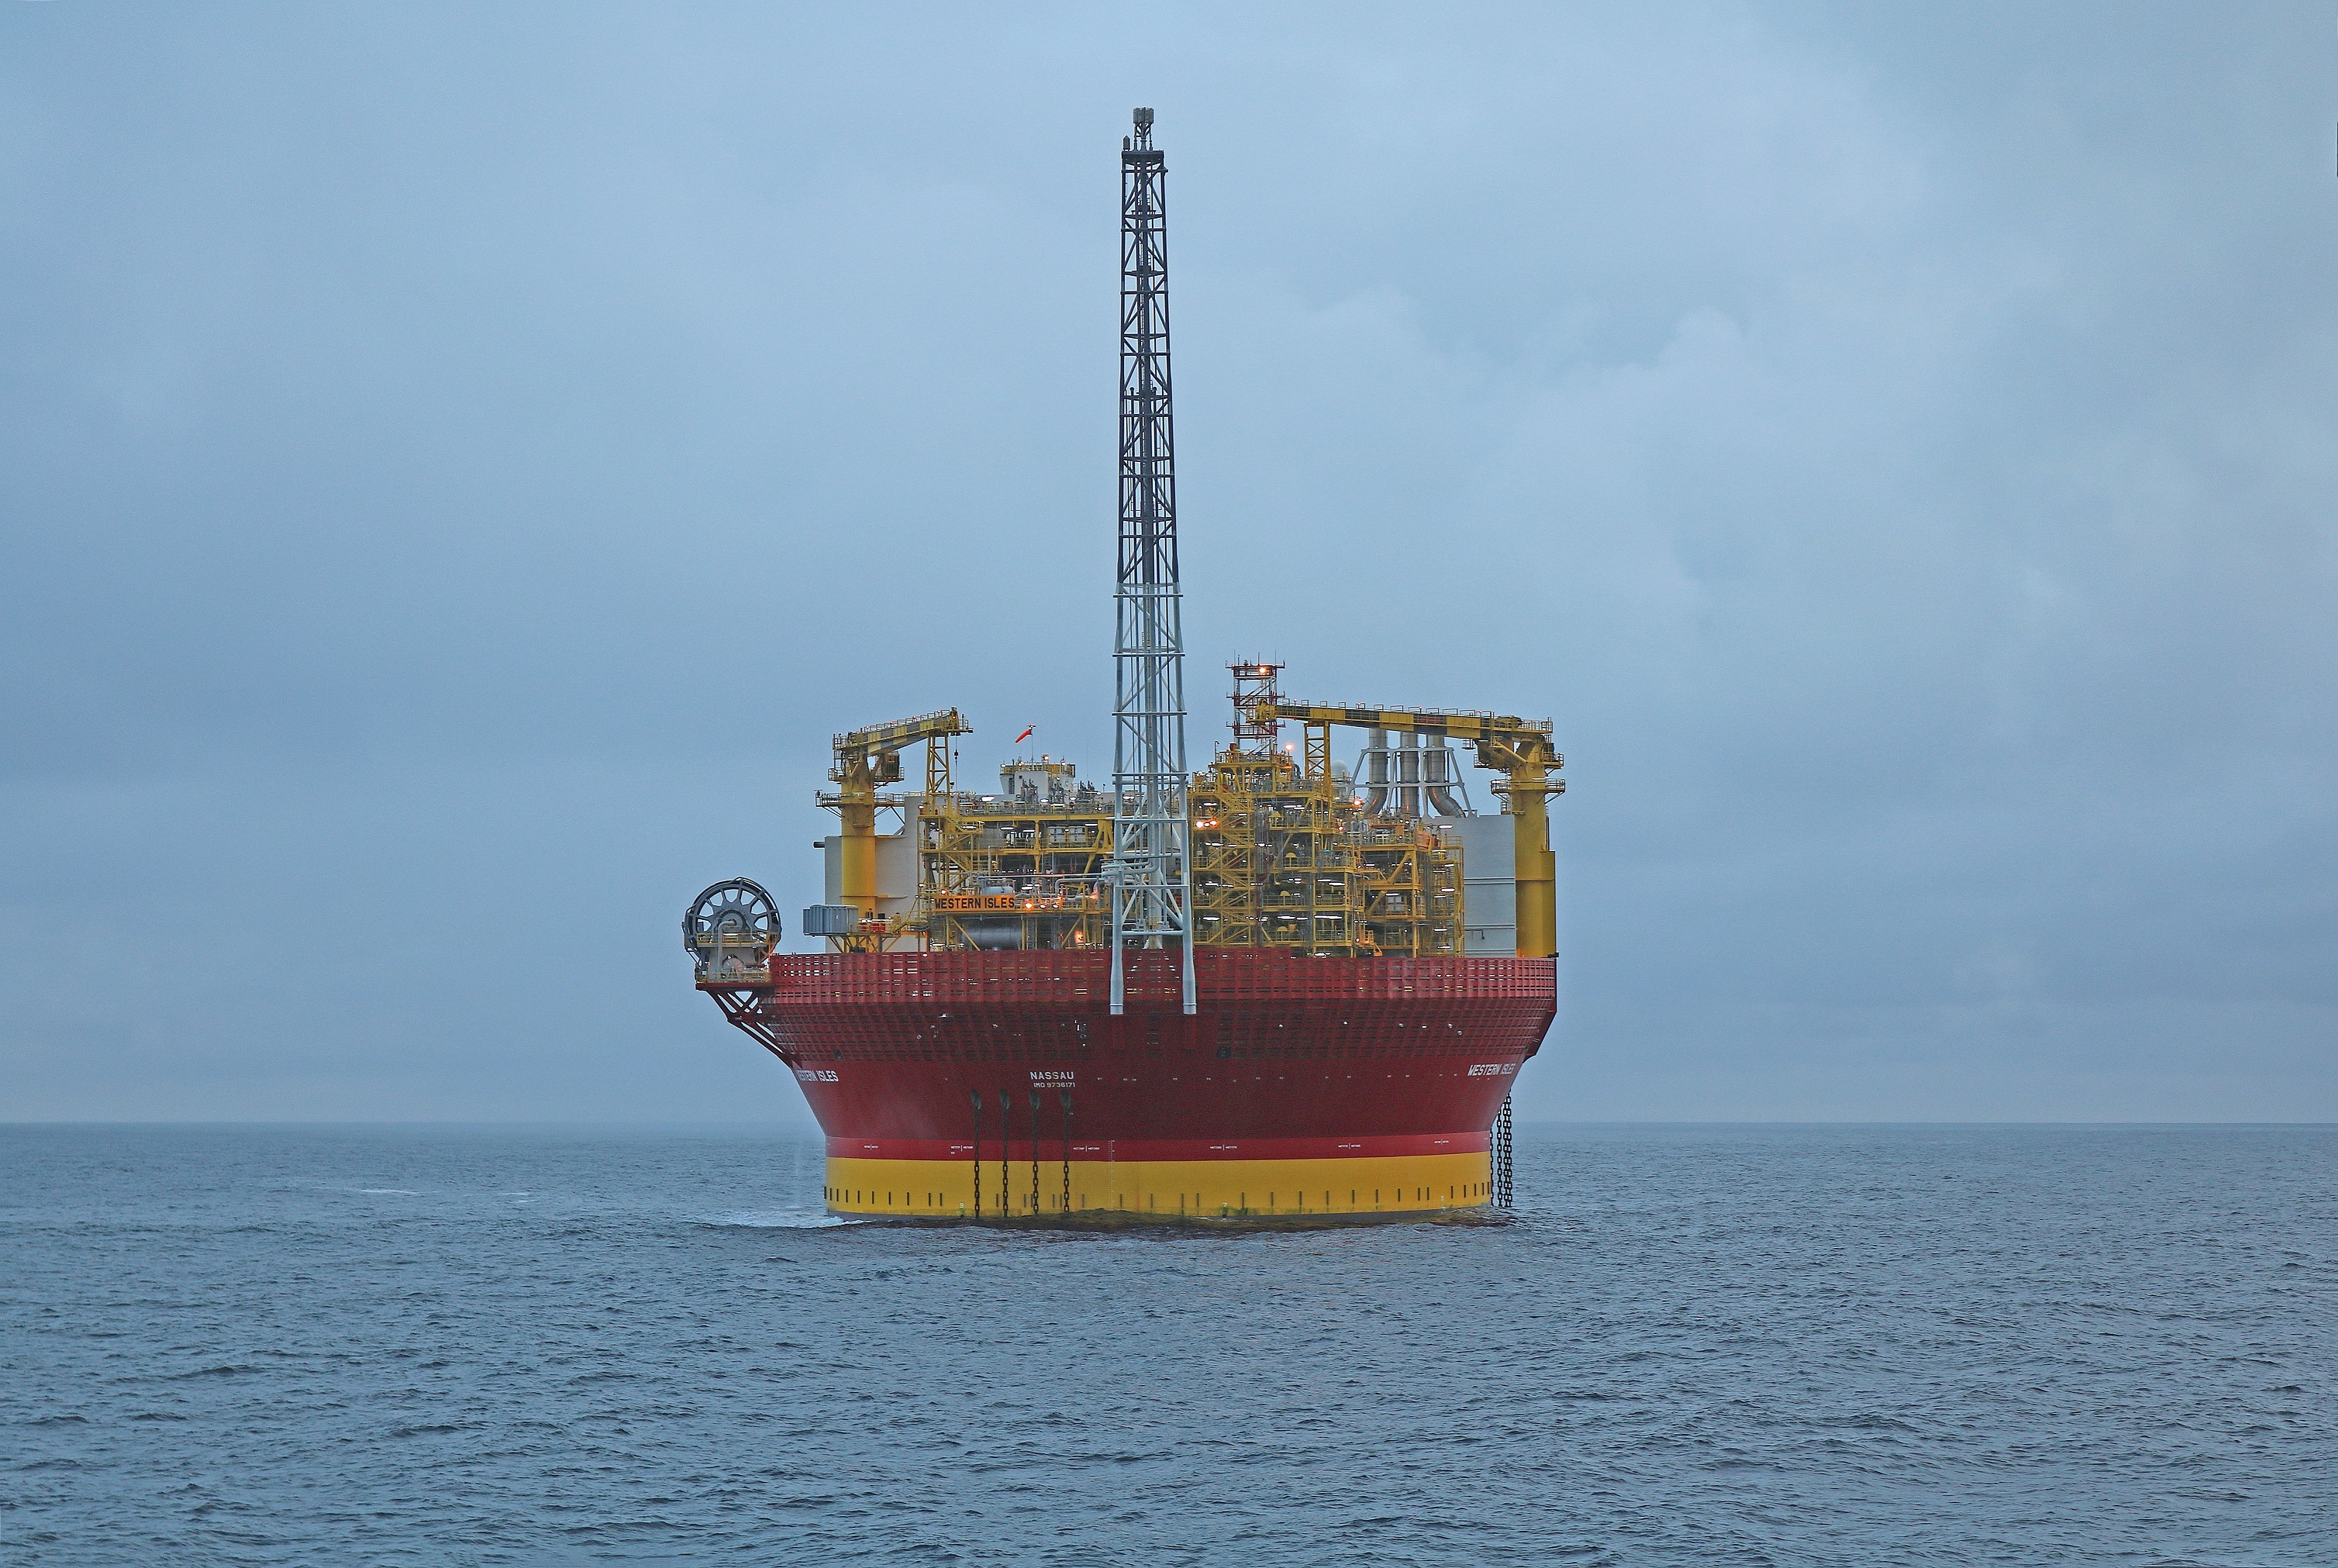 Dana Petroleum is owned by Korea National Oil Corporation. Pictured is Dana's Western Isles FPSO in the North Sea.